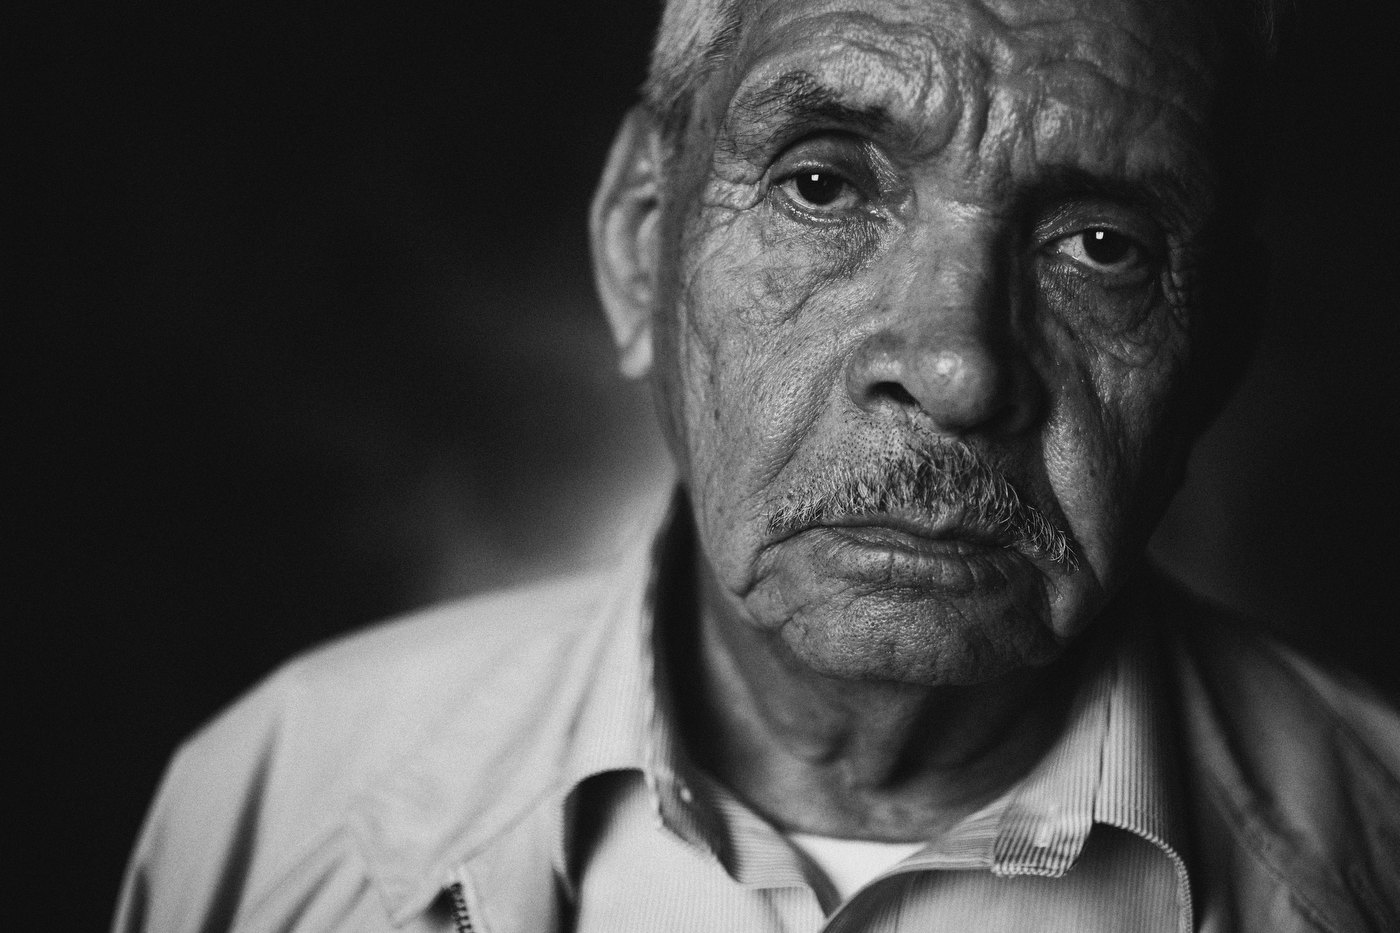 David A. Sandoval. The Last Braceros for The Smithsonian Magazine.